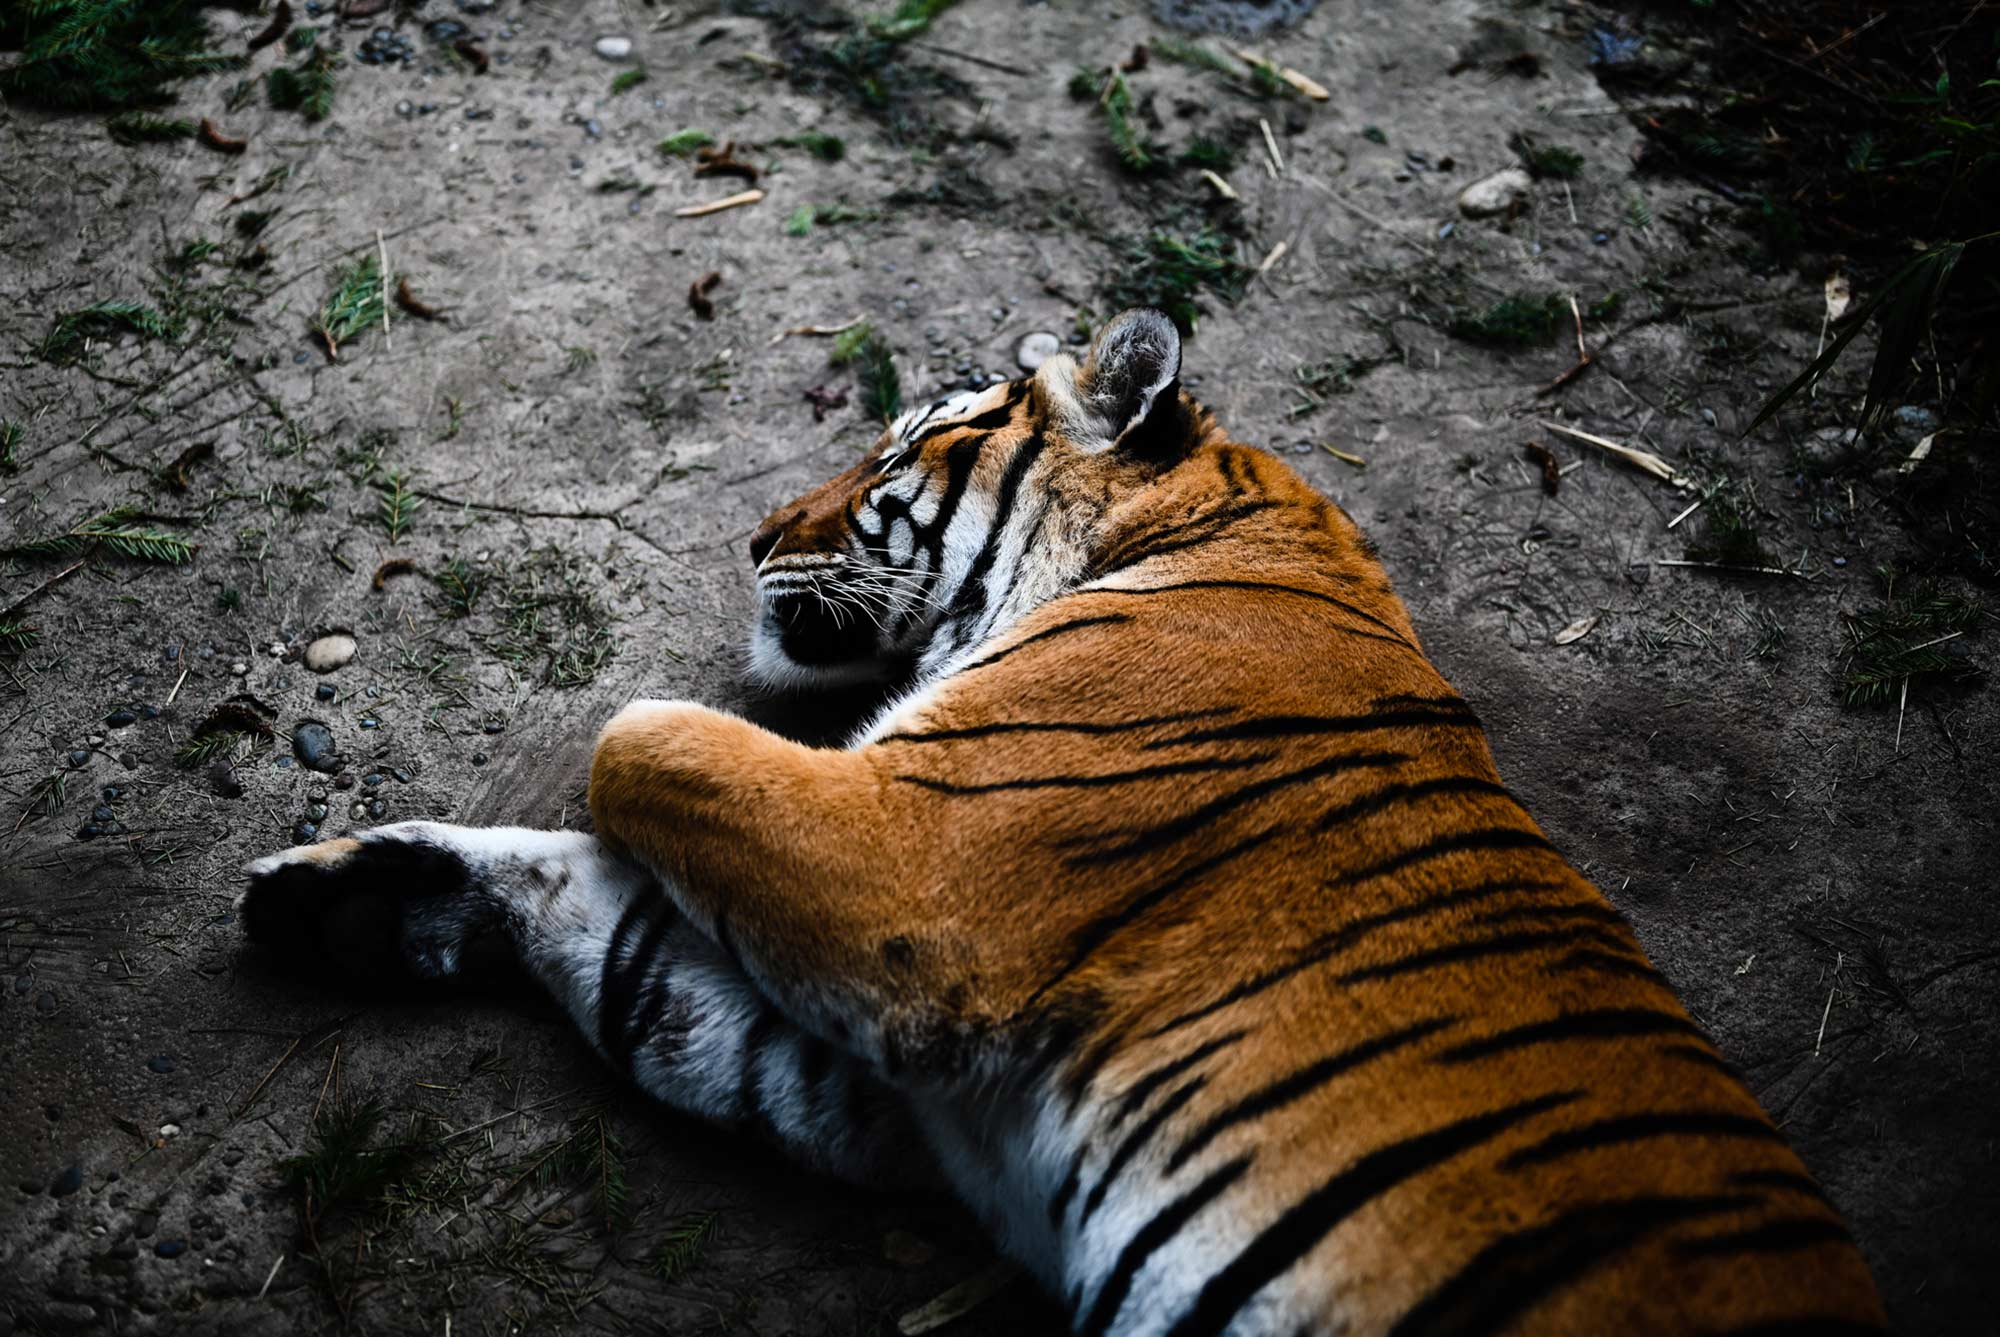 Tiger Sleeping, by Gibran Hamdan Seattle photographer